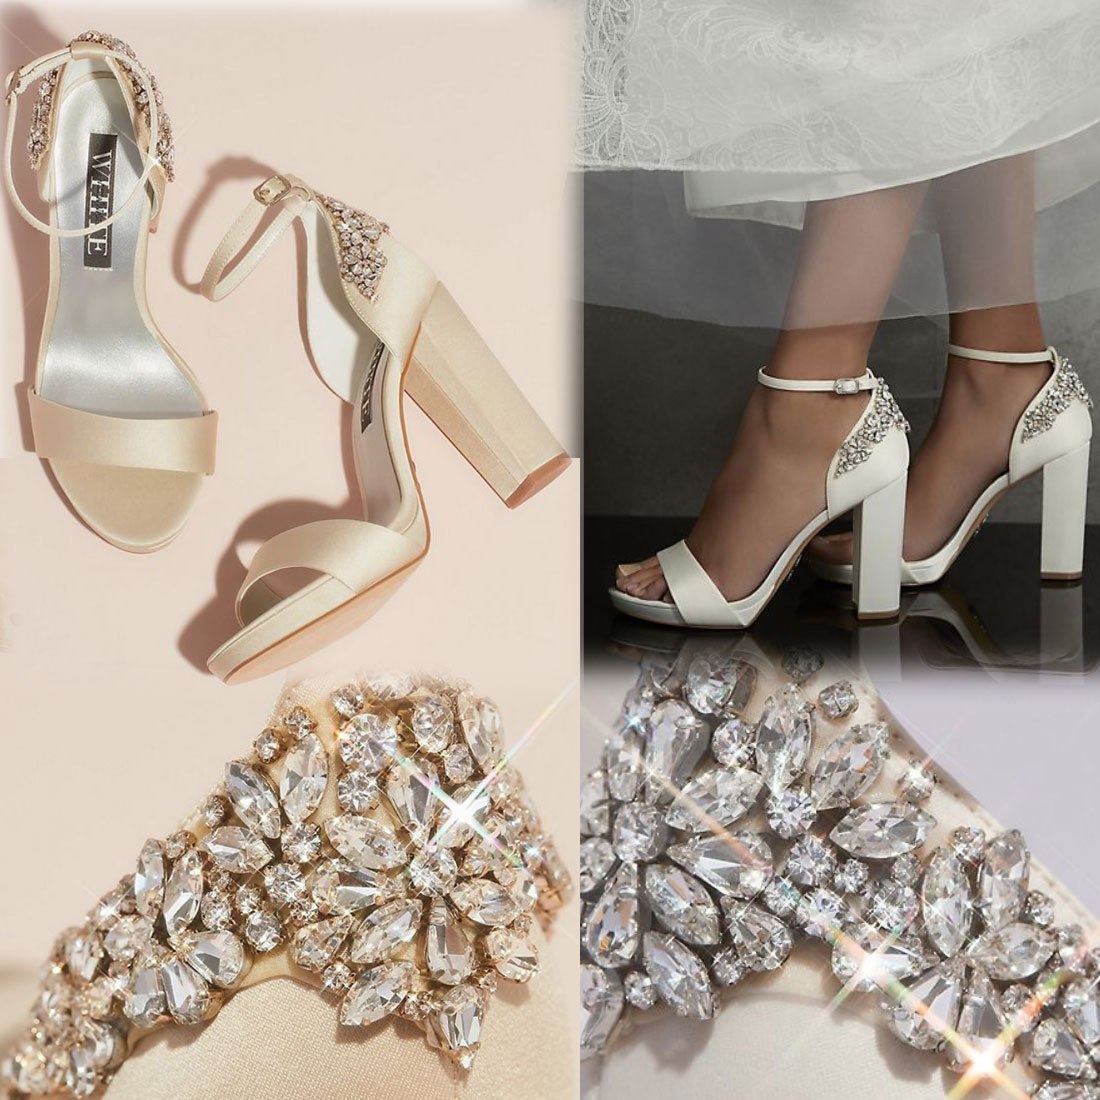 shop vera wang shoes